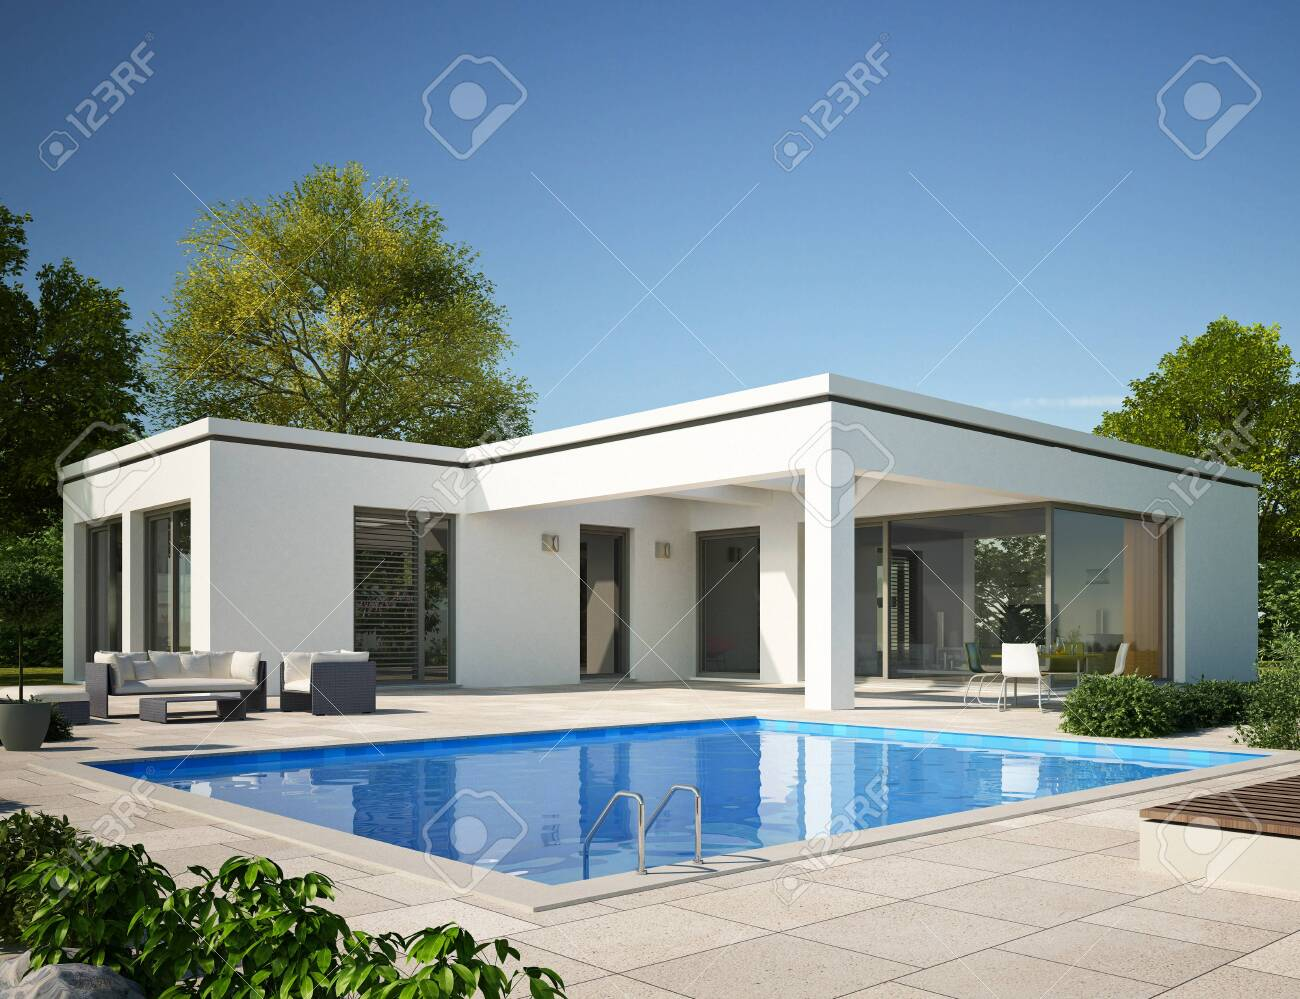 Modern bungalow with pool - 131856333